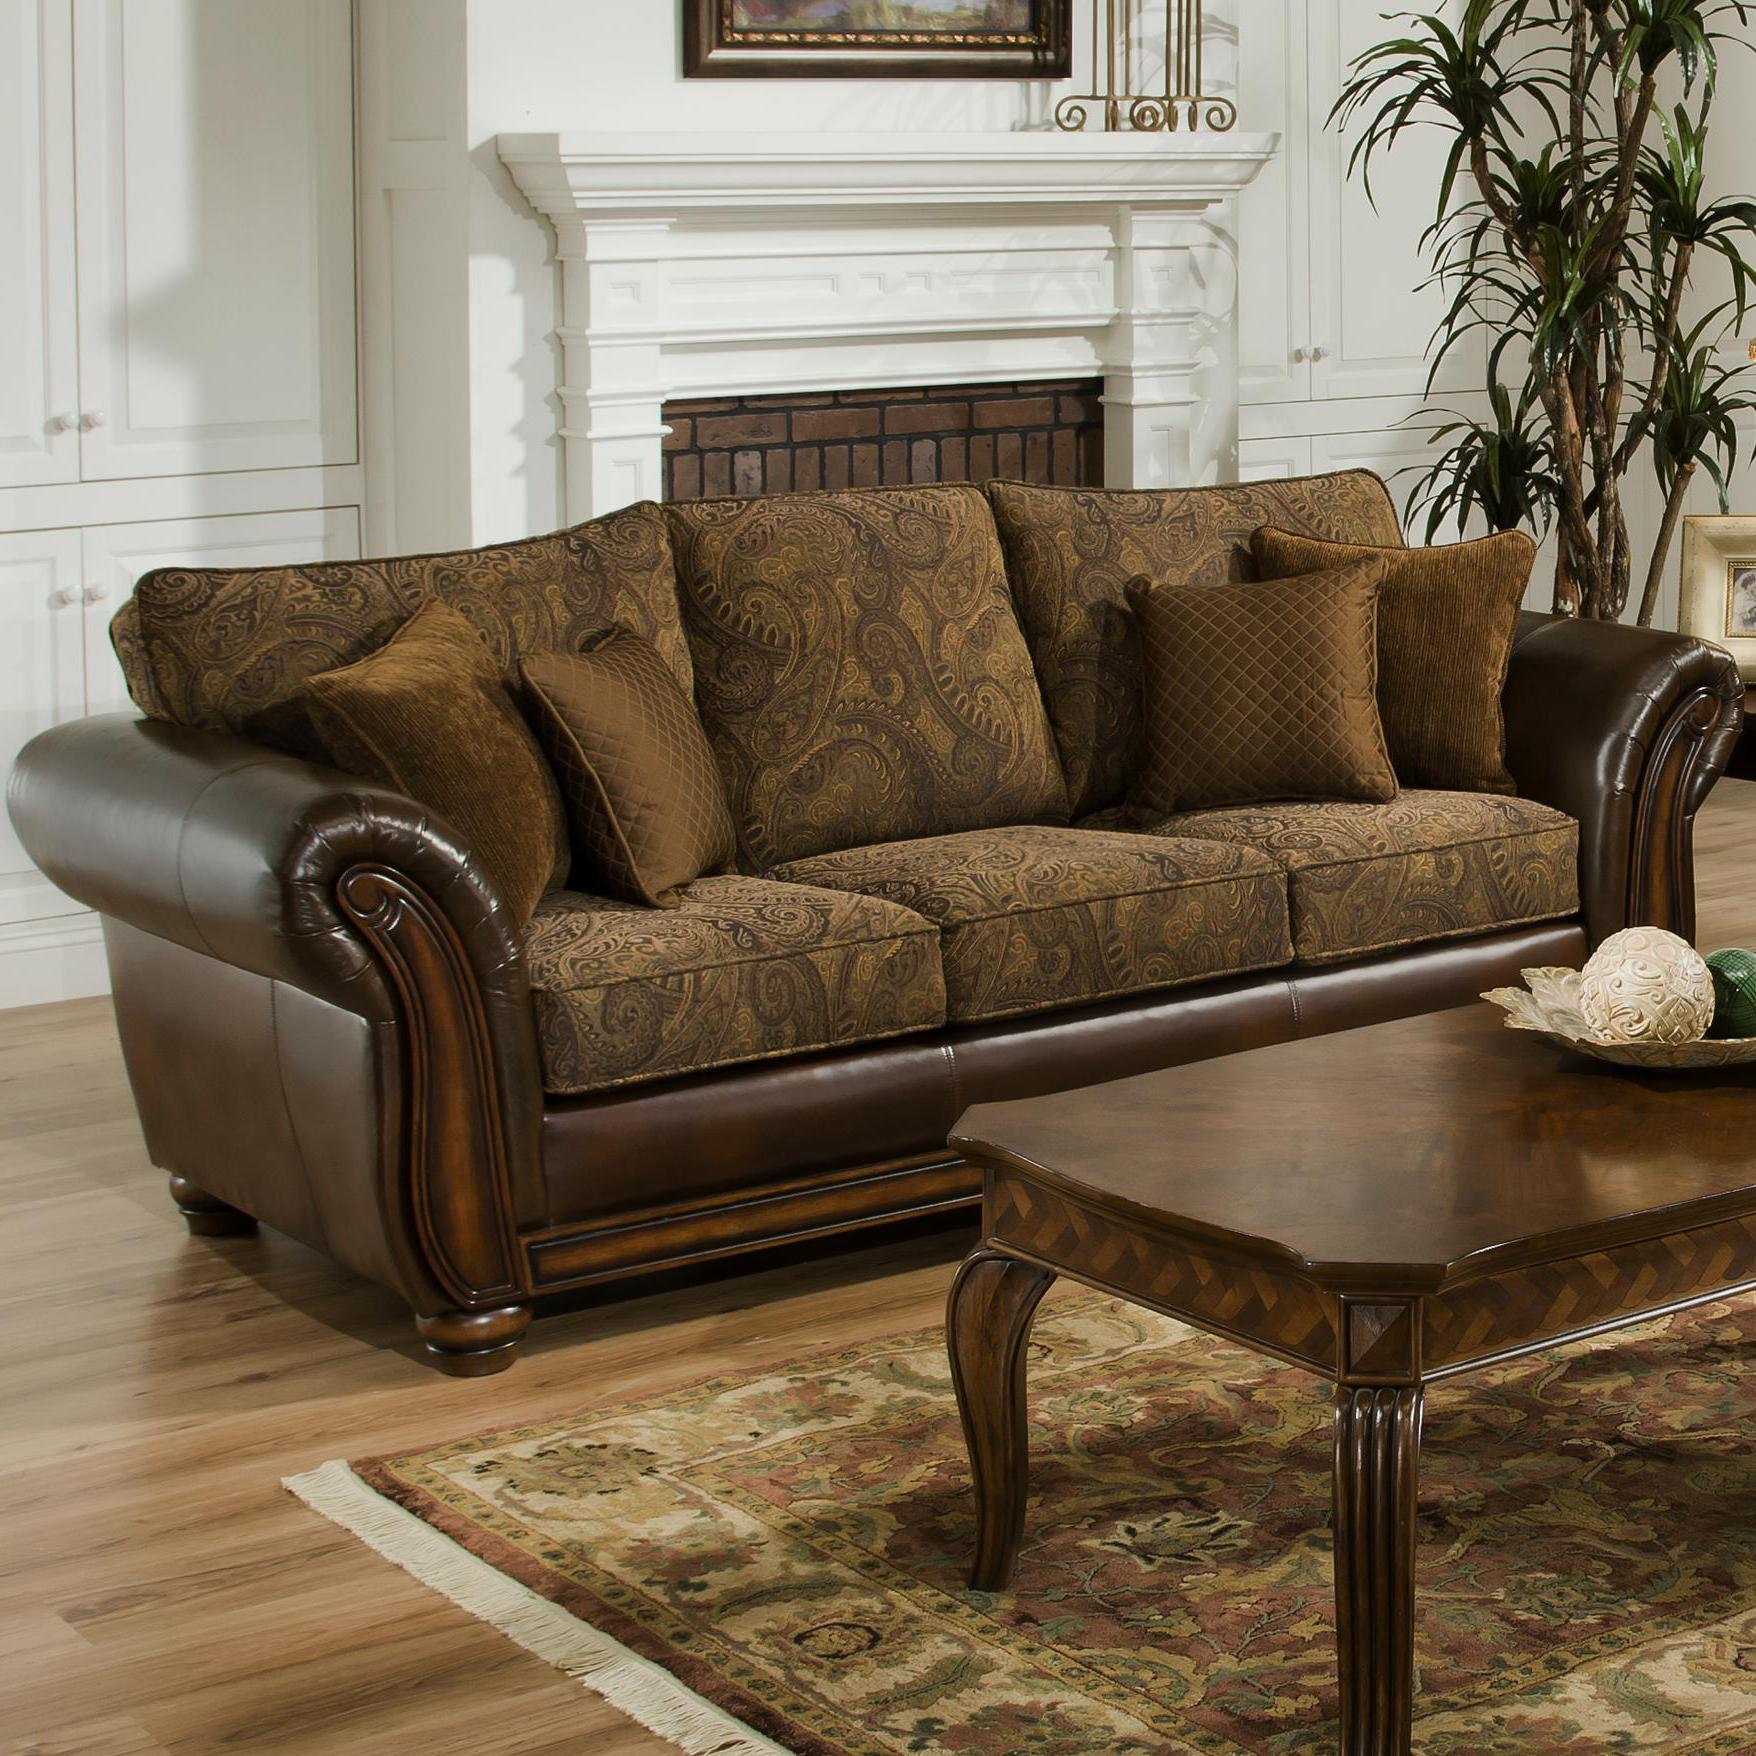 Simmons upholstery 8104 stationary leather and chenille sofa royal furniture sofas Upholstered sofas and loveseats